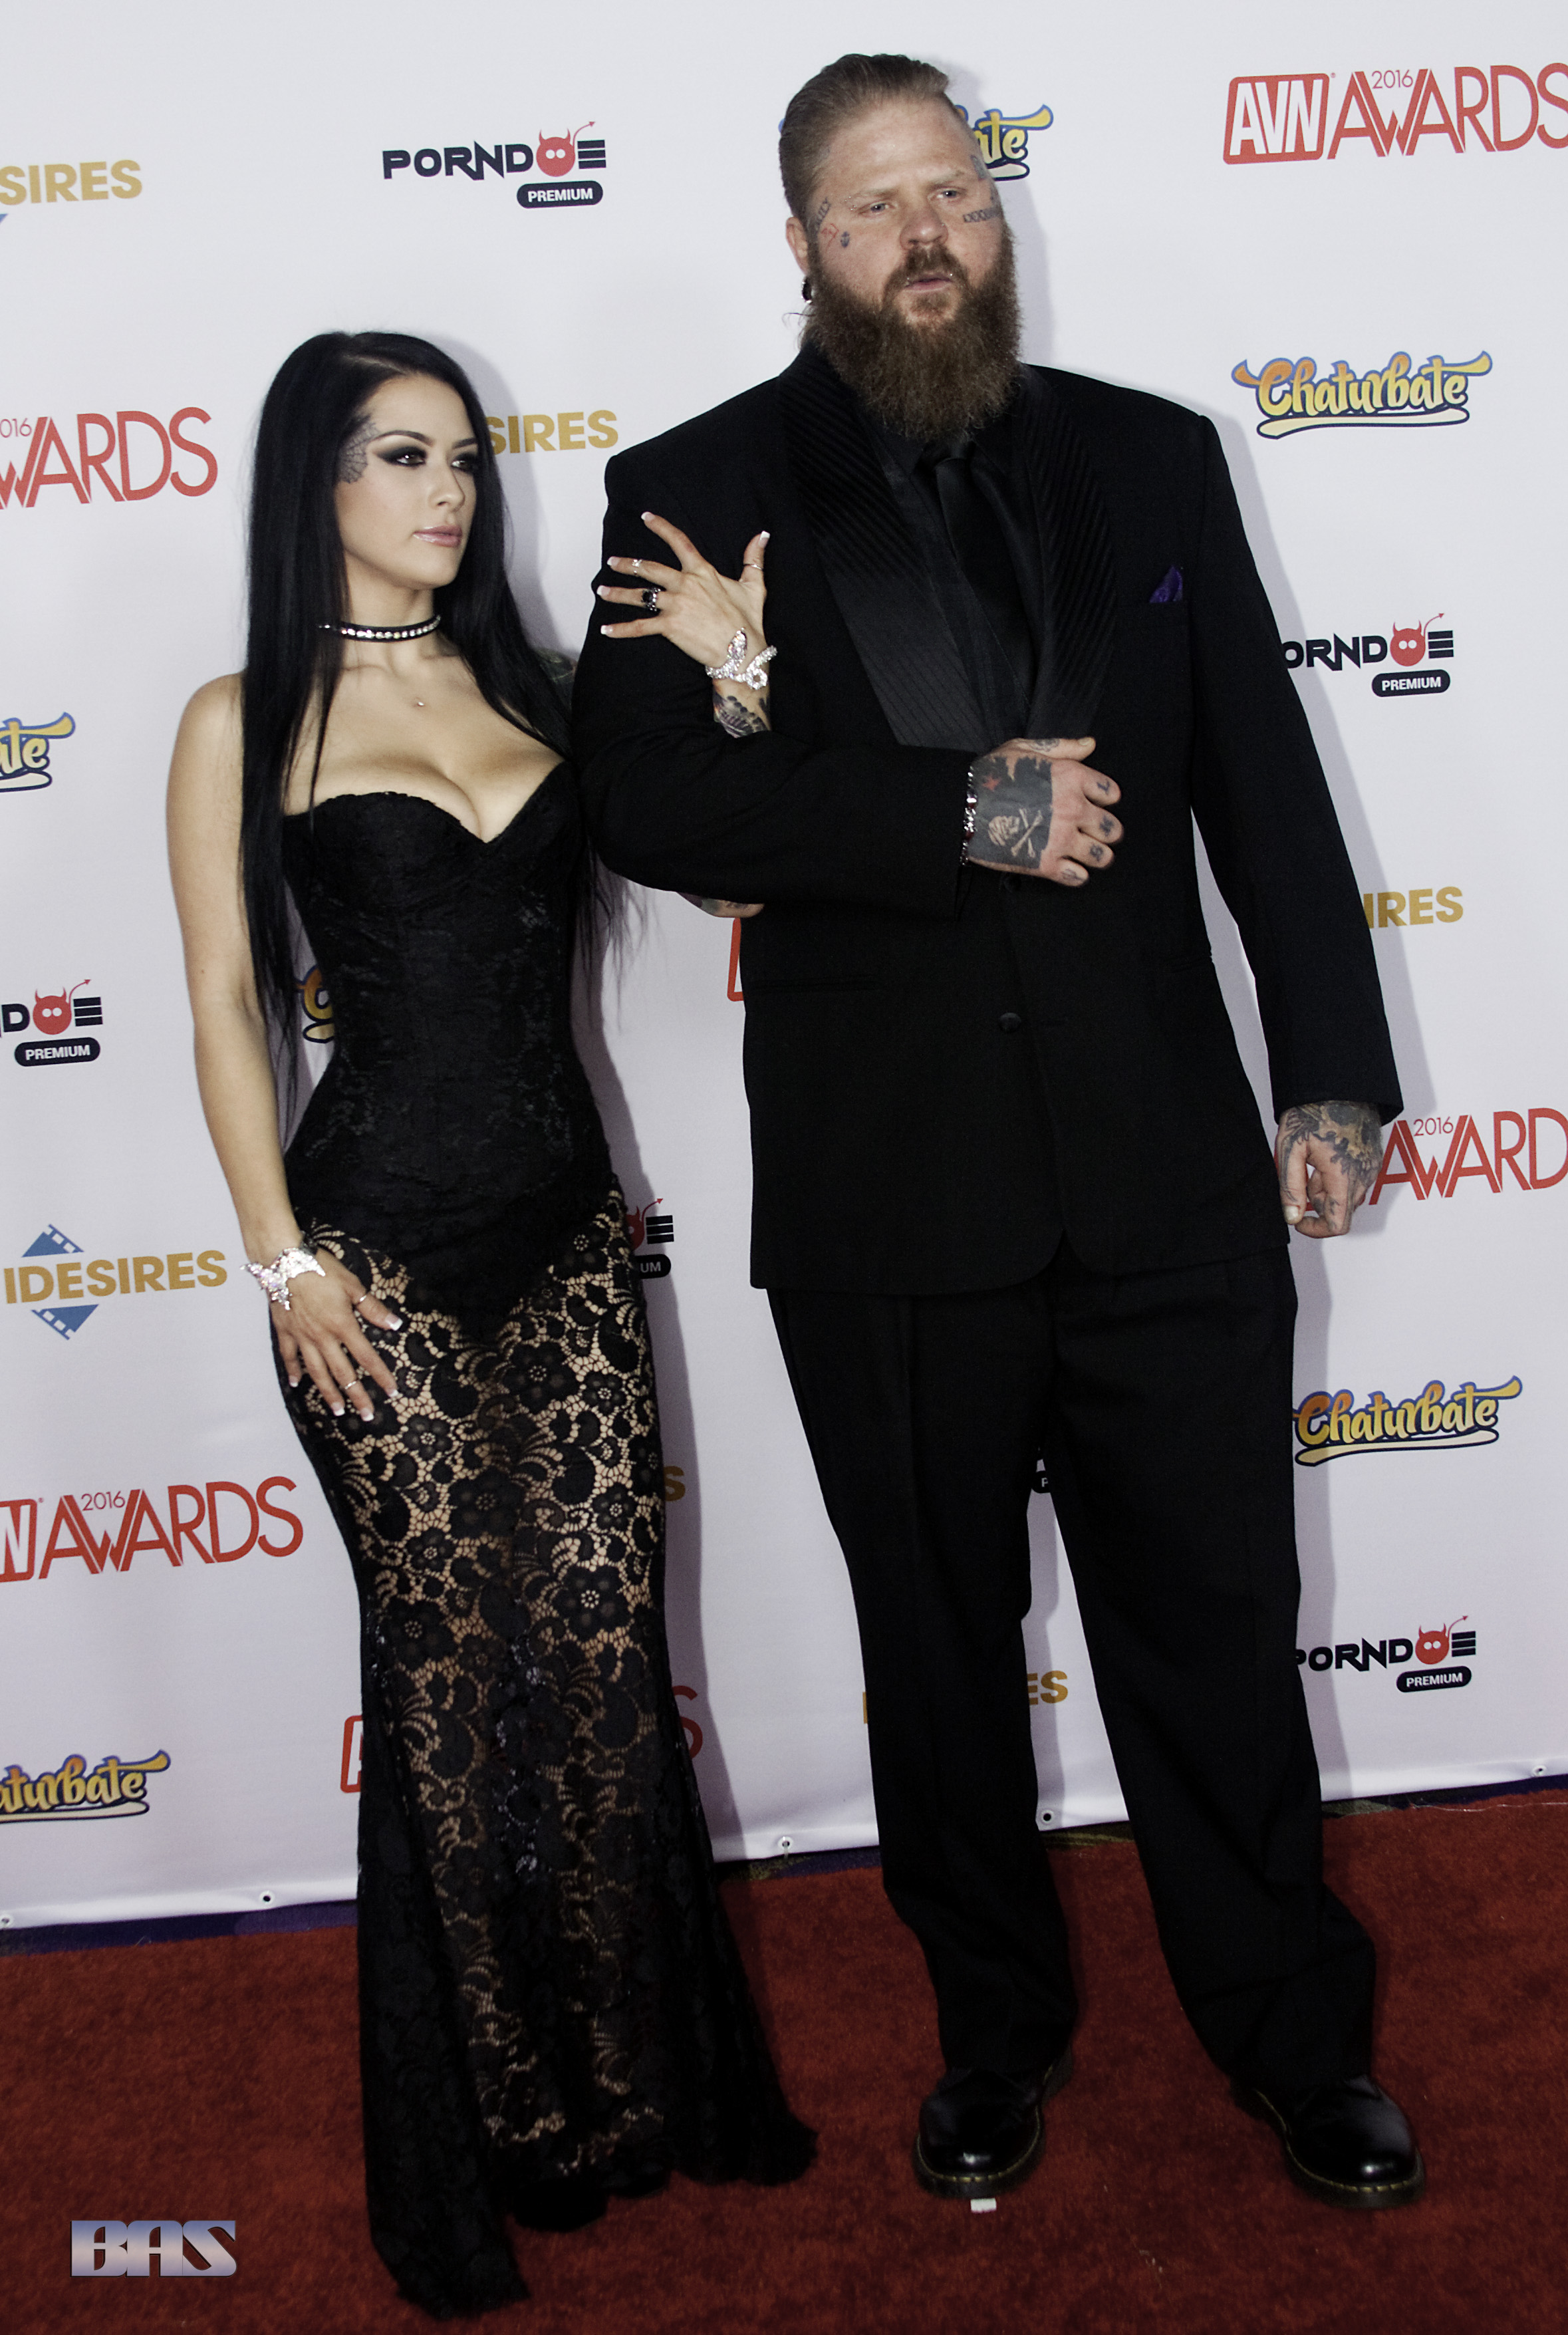 Katrina_Jade_and_Nigel_Dictator_at_AVN_Awards_2016_(26398673240)